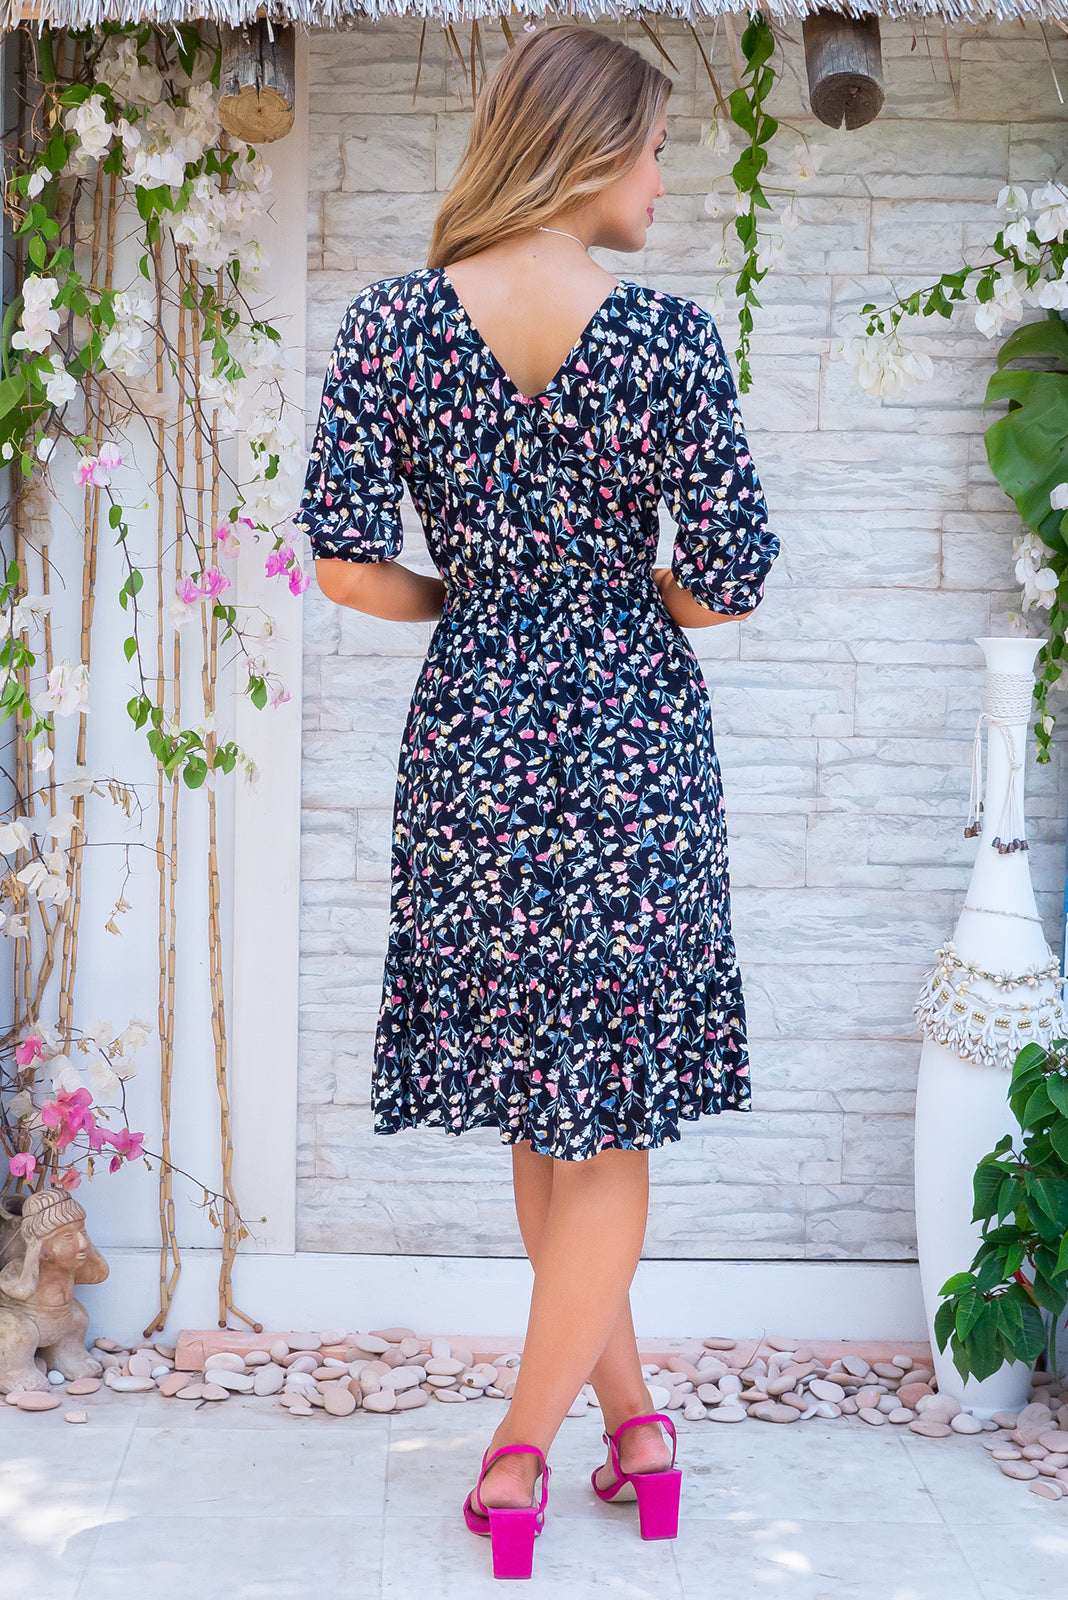 Sally Vinca Piana Noir Mini Dress, bohemian summer style, 100% rayon, knee length, functional button down detailing to waist, loose 1/112 length cuffed sleeves, deep frill around hemline, deep navy base with small magenta, gold and grey blue floral print.